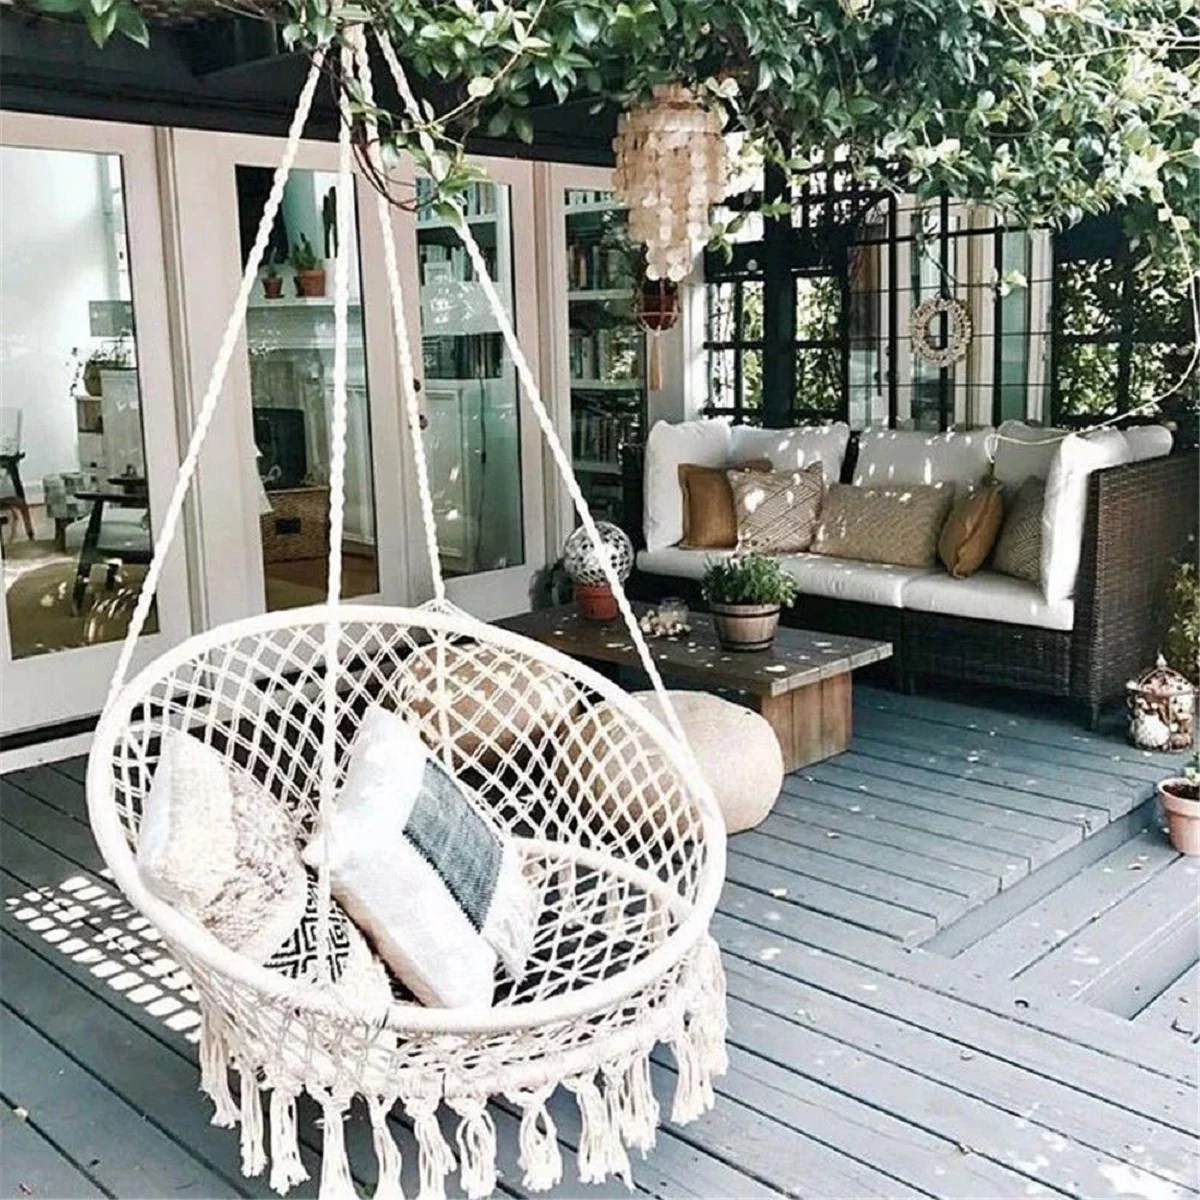 Outdoor Hanging Swing Cotton Hammock Chair Solid Mesh Woven Rope Yard Patio Porch Garden Wooden Bar Chair Swing Patio Chair Home Decor Gift Install Tool Walmart Com Walmart Com